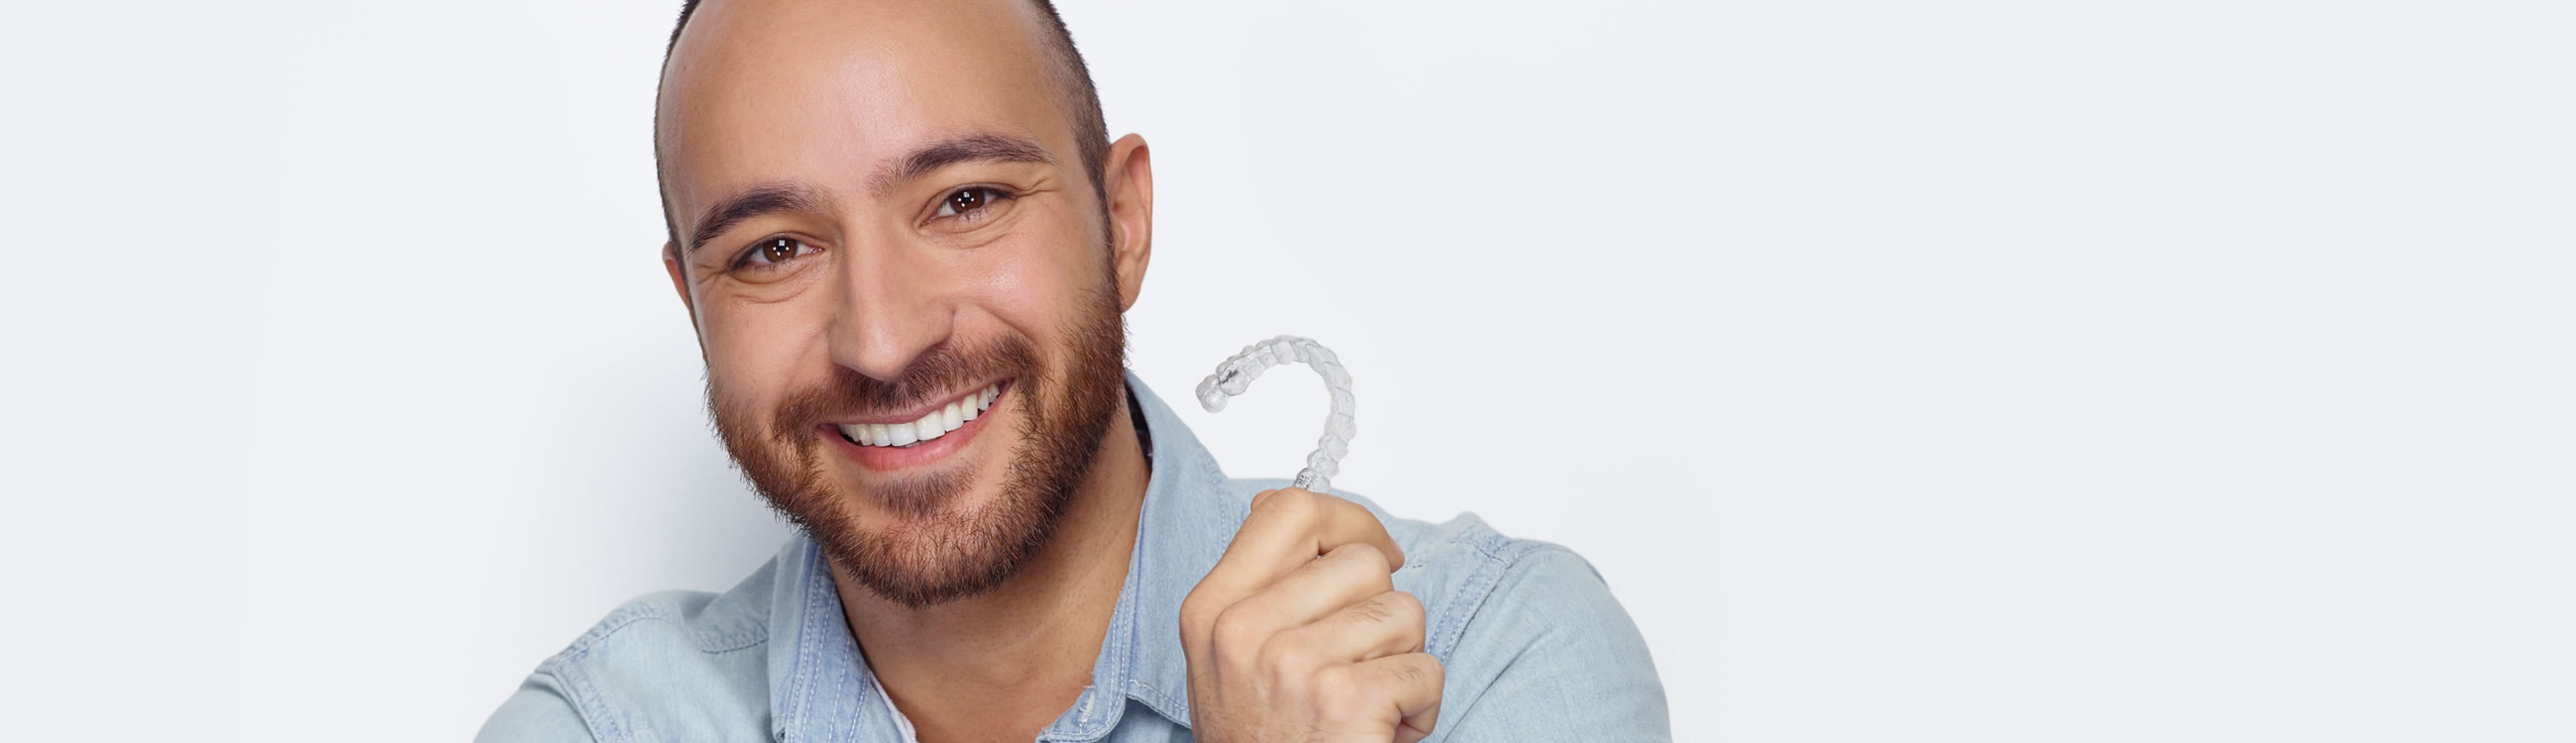 Invisalign invisible braces in Bracknell